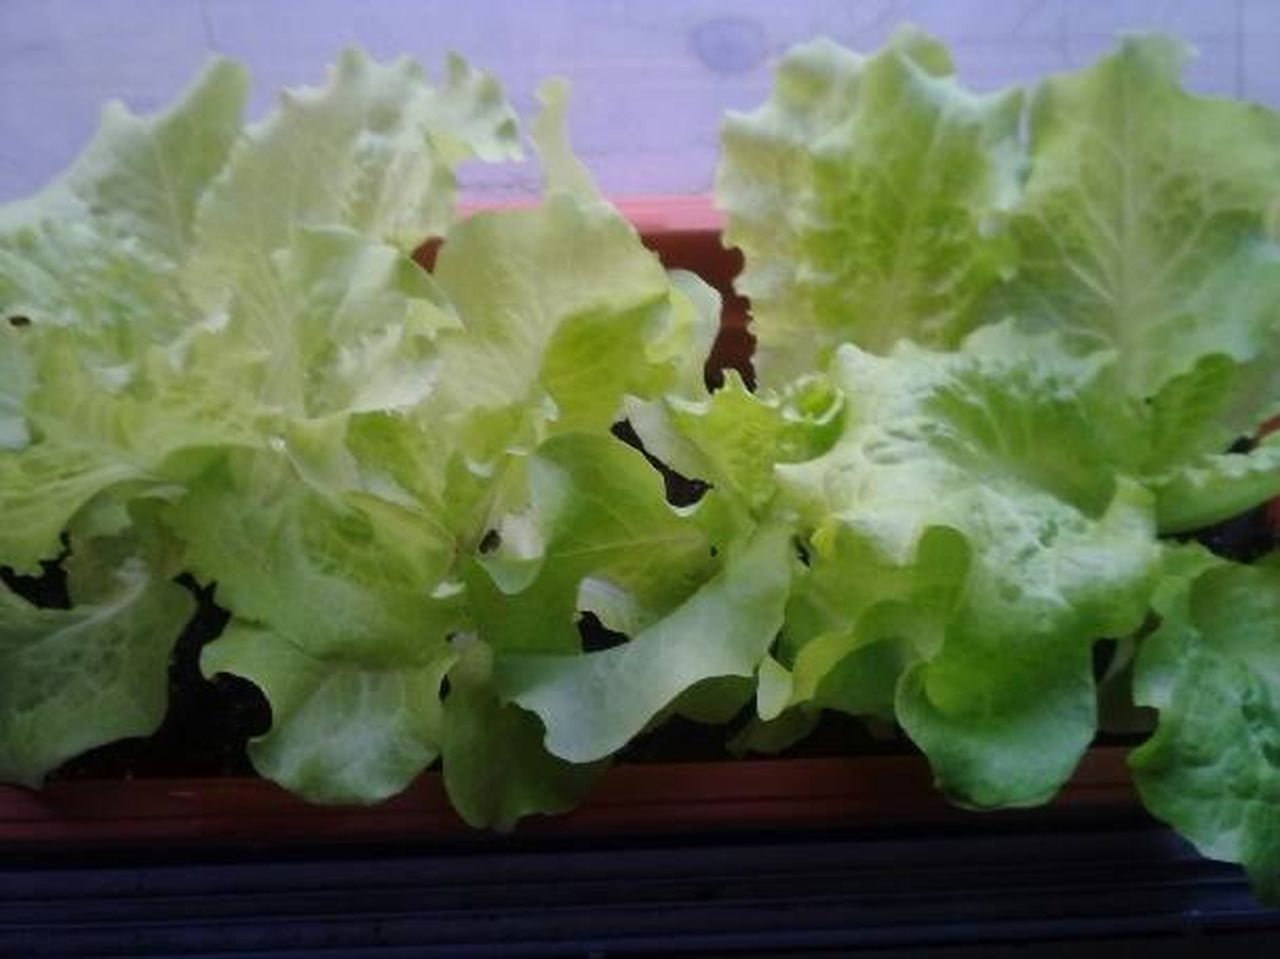 Windowsill gardening is easy, quick and fun for all. Eatng Right Gardening For Kids Healthy Food Heathyliving Indoor Gardening Lettuce Photography Potted Plants Windowsill Gardening